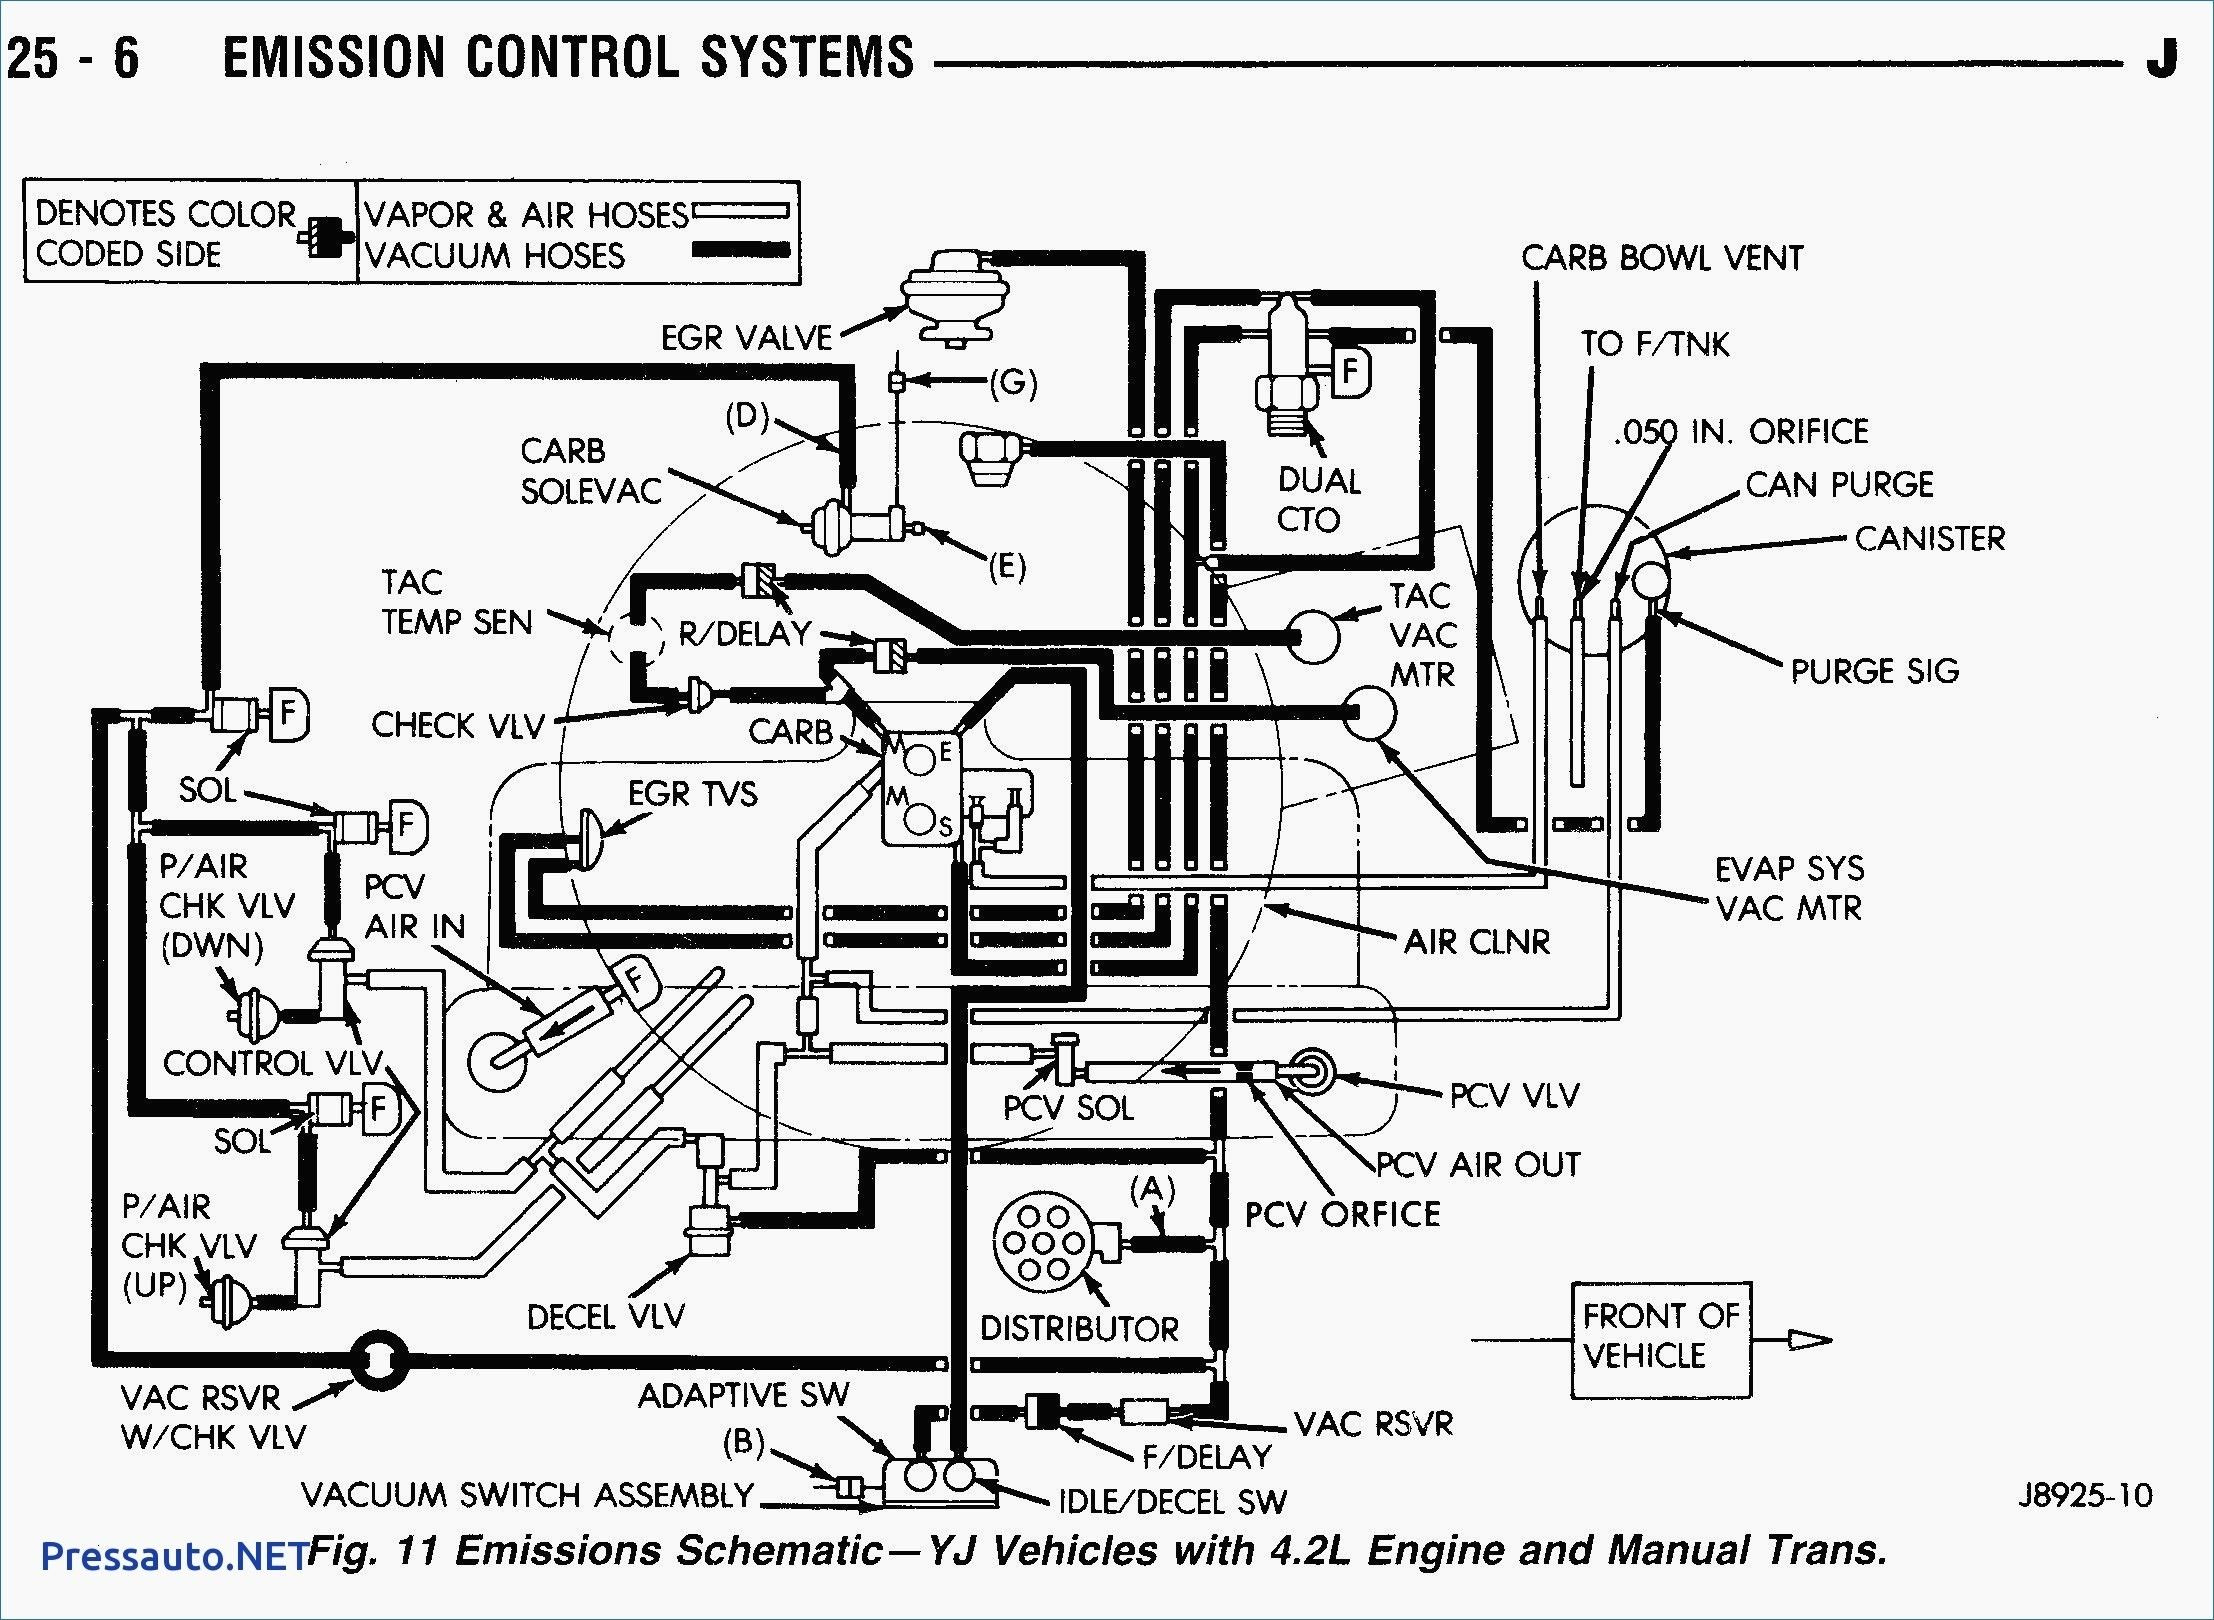 engine wiring harness diagram on 1990 jeep engine wiring diagramengine wiring harness diagram on 1990 jeep [ 2214 x 1620 Pixel ]